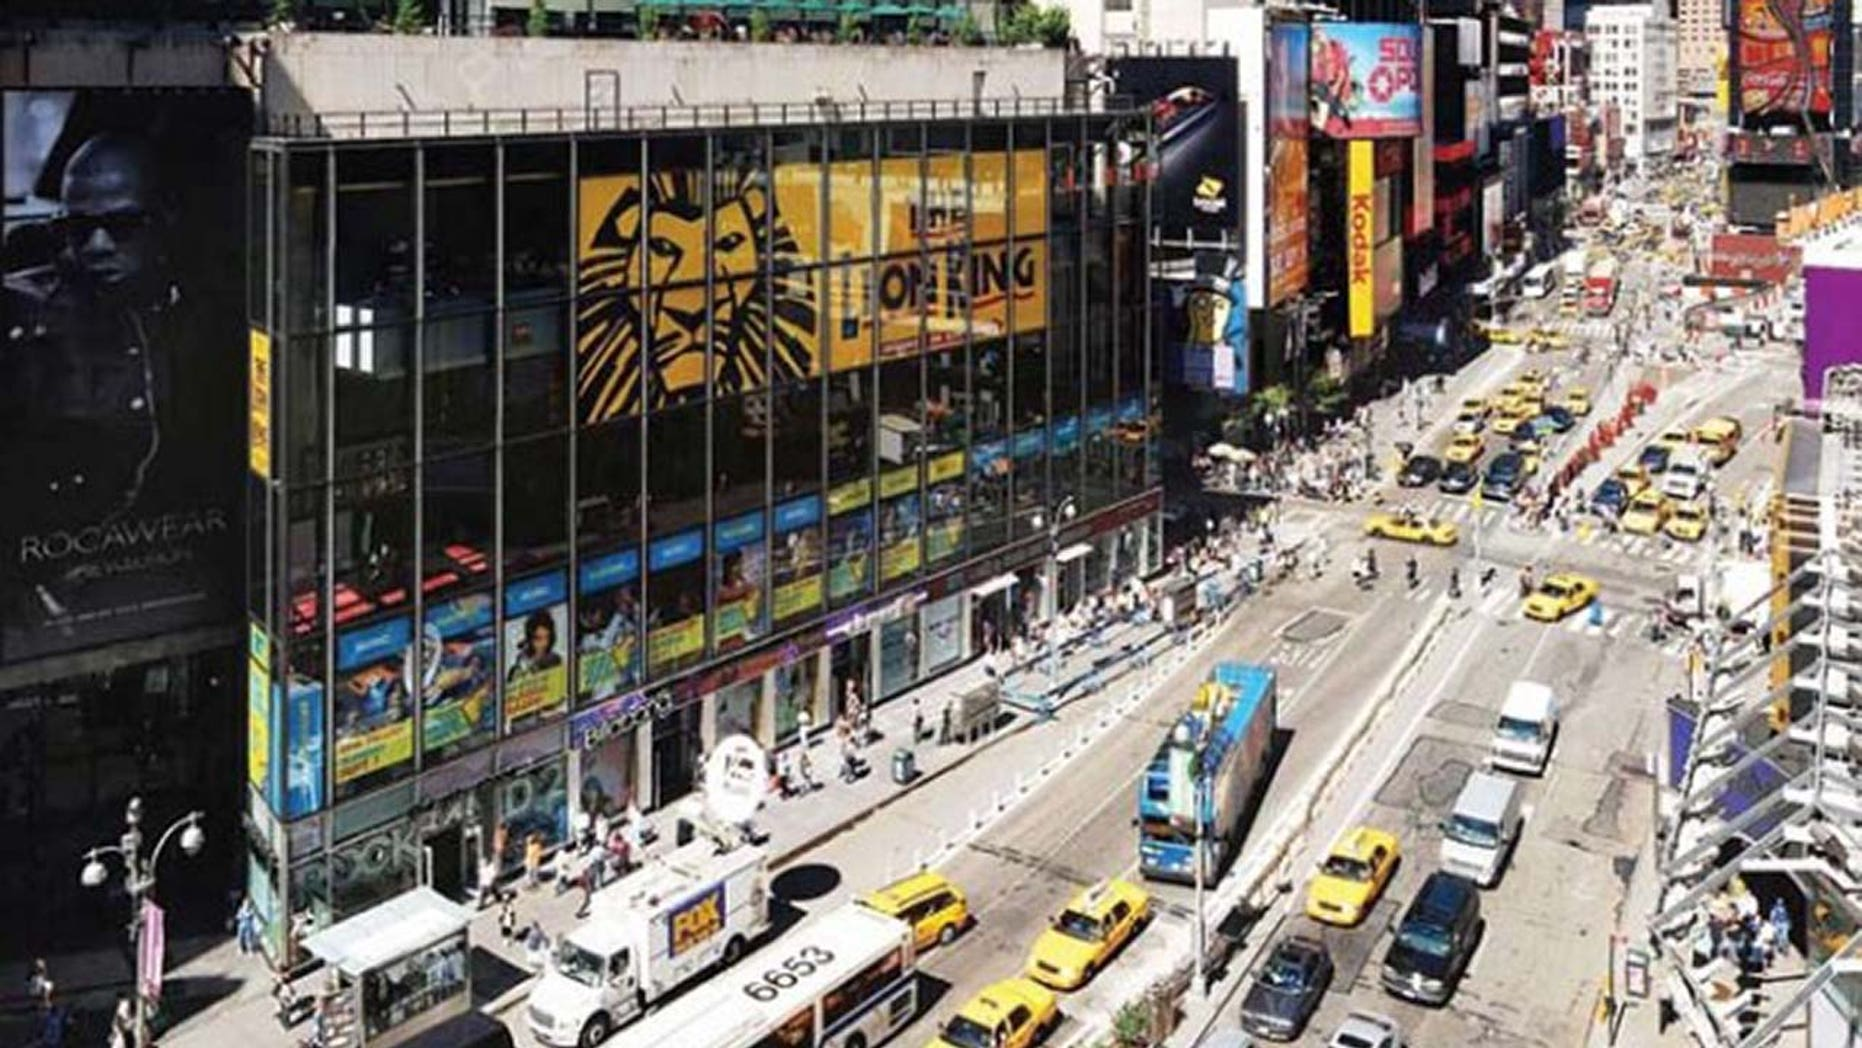 Panic in Times Square Over Active Shooter Fear